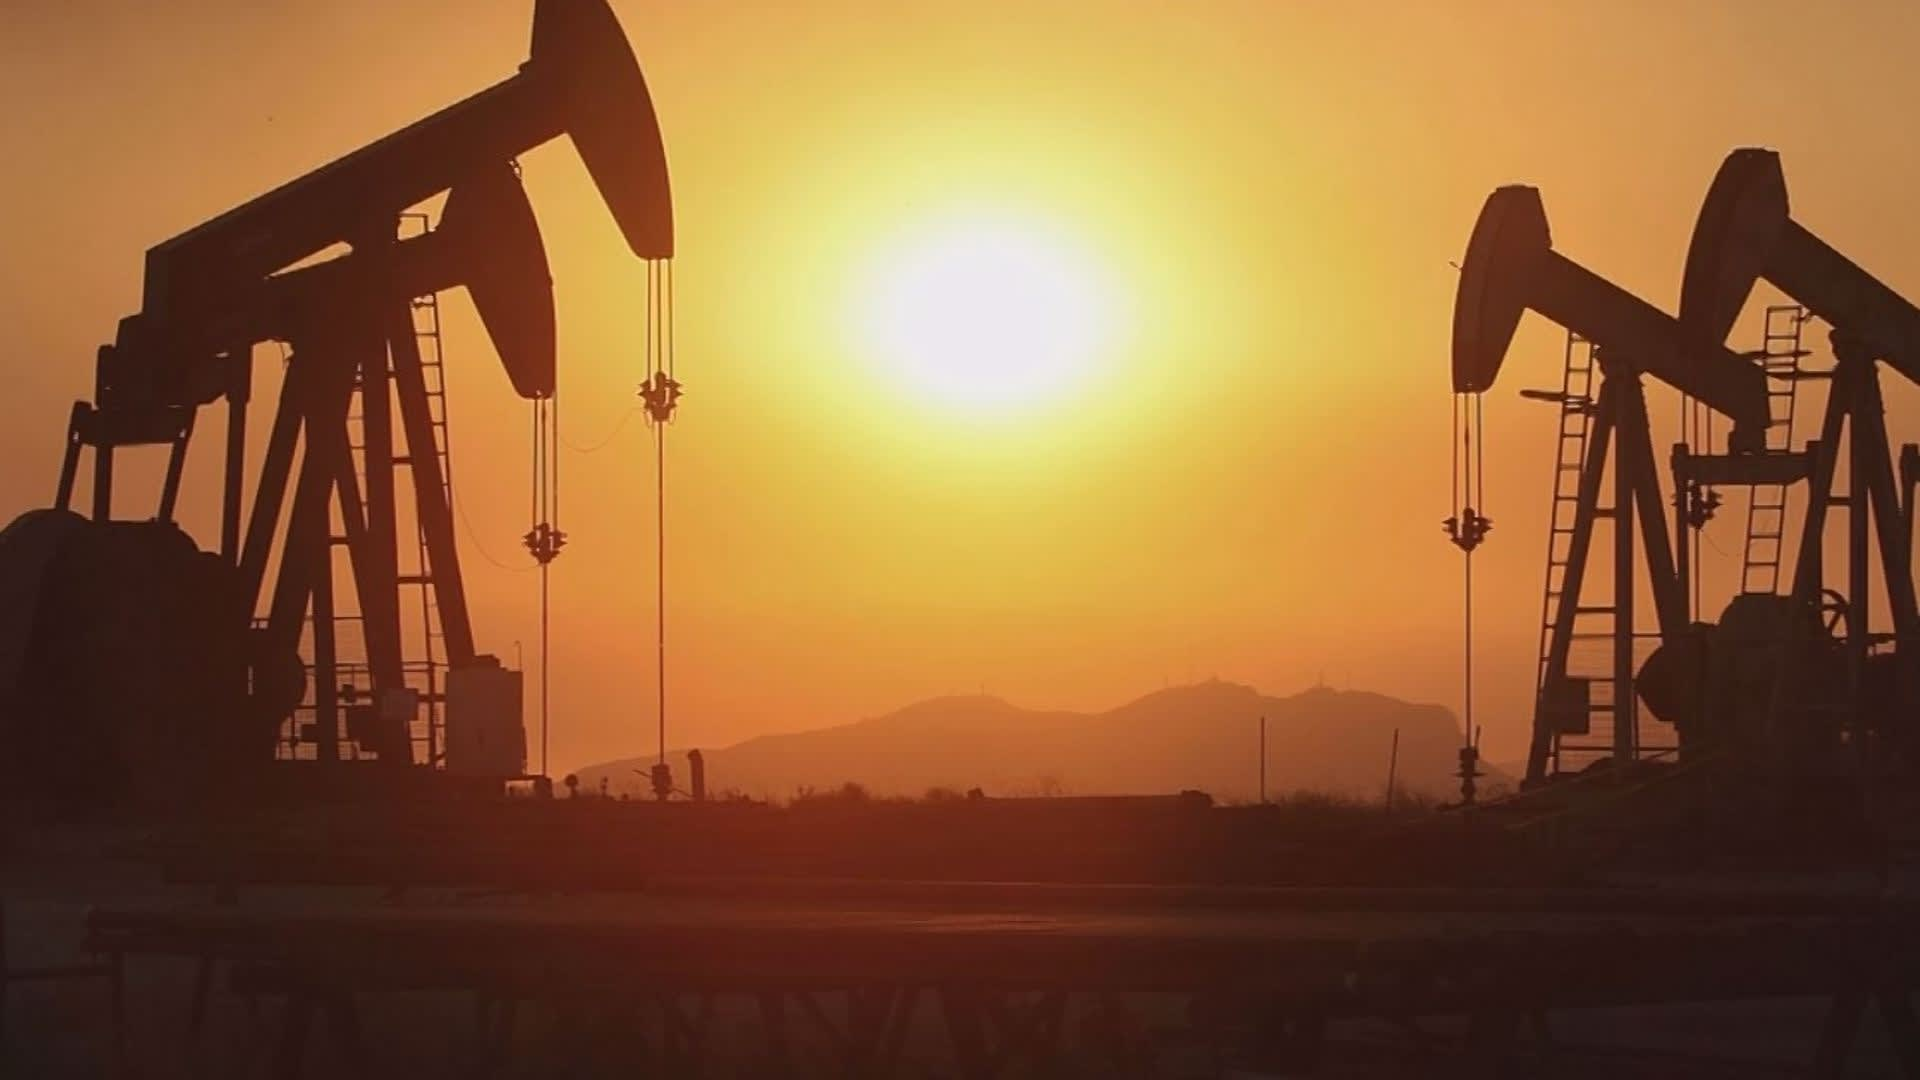 Oil prices rebound after falling below $50 — Here's what three experts say  investors should know